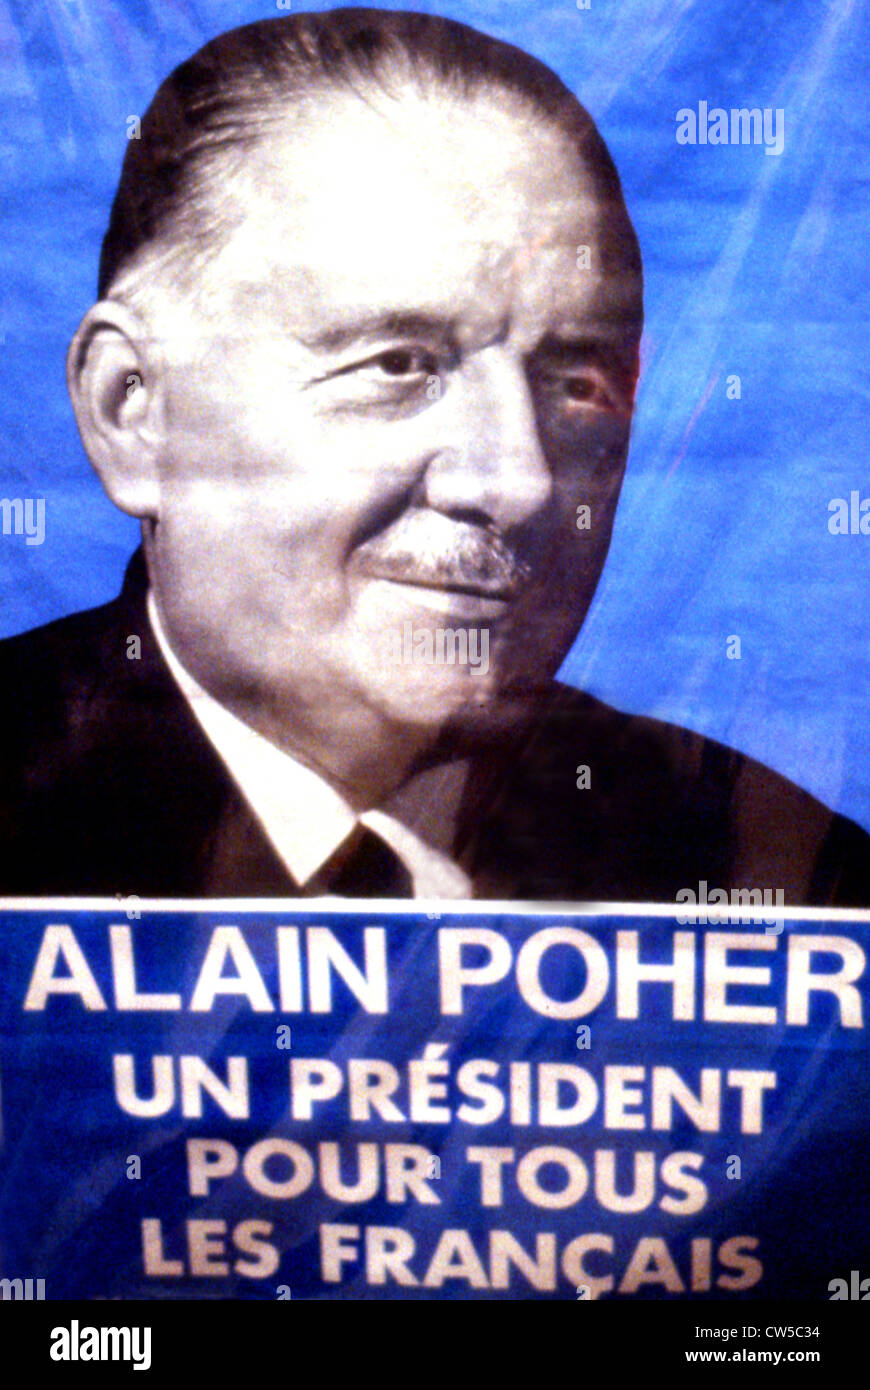 Electoral propaganda poster for Alain Poher Stock Photo